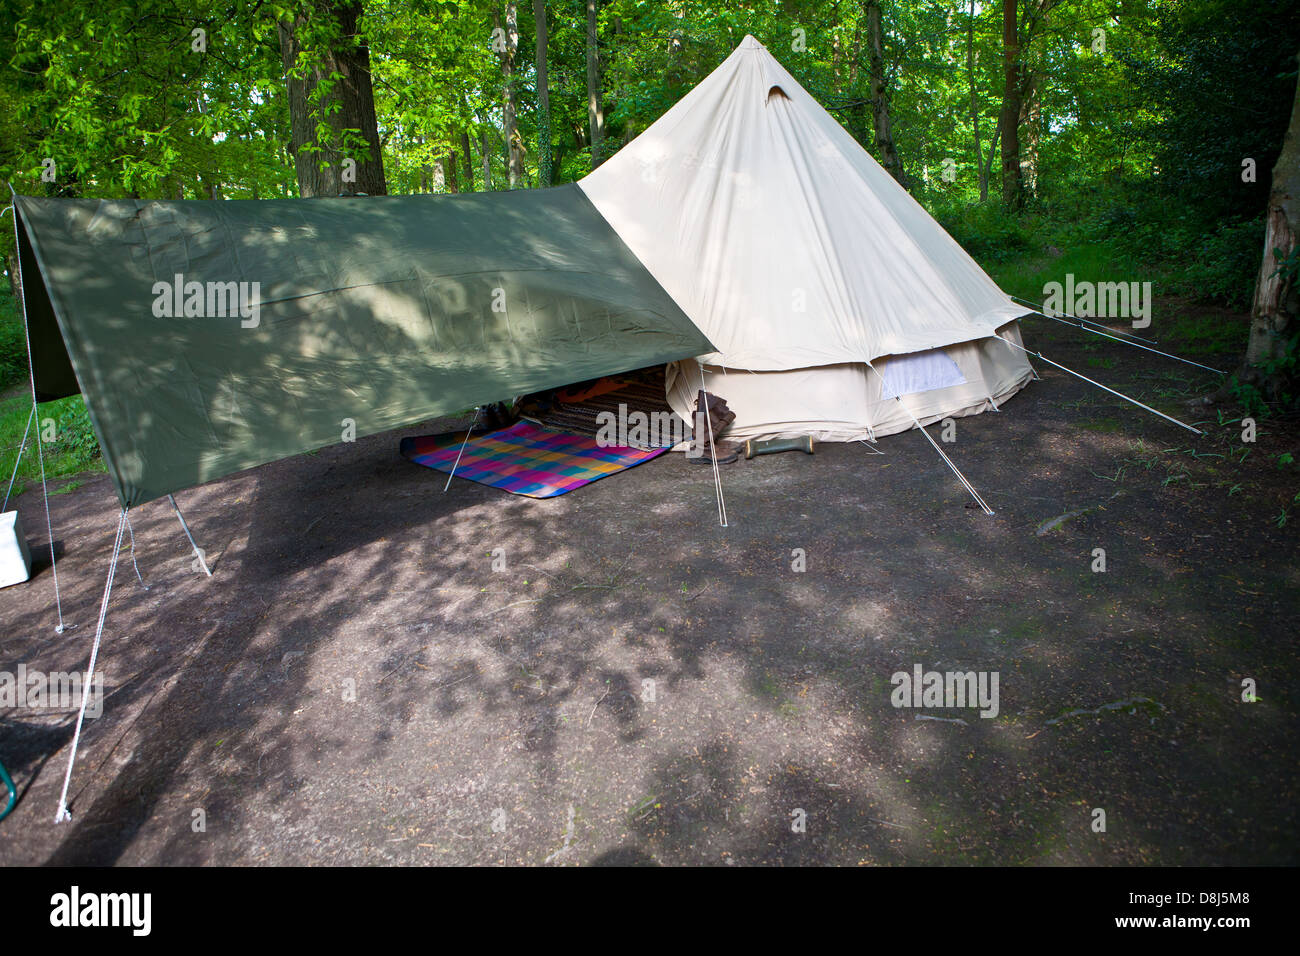 Bell tent and awning - Stock Image & Bell Tent Stock Photos u0026 Bell Tent Stock Images - Alamy